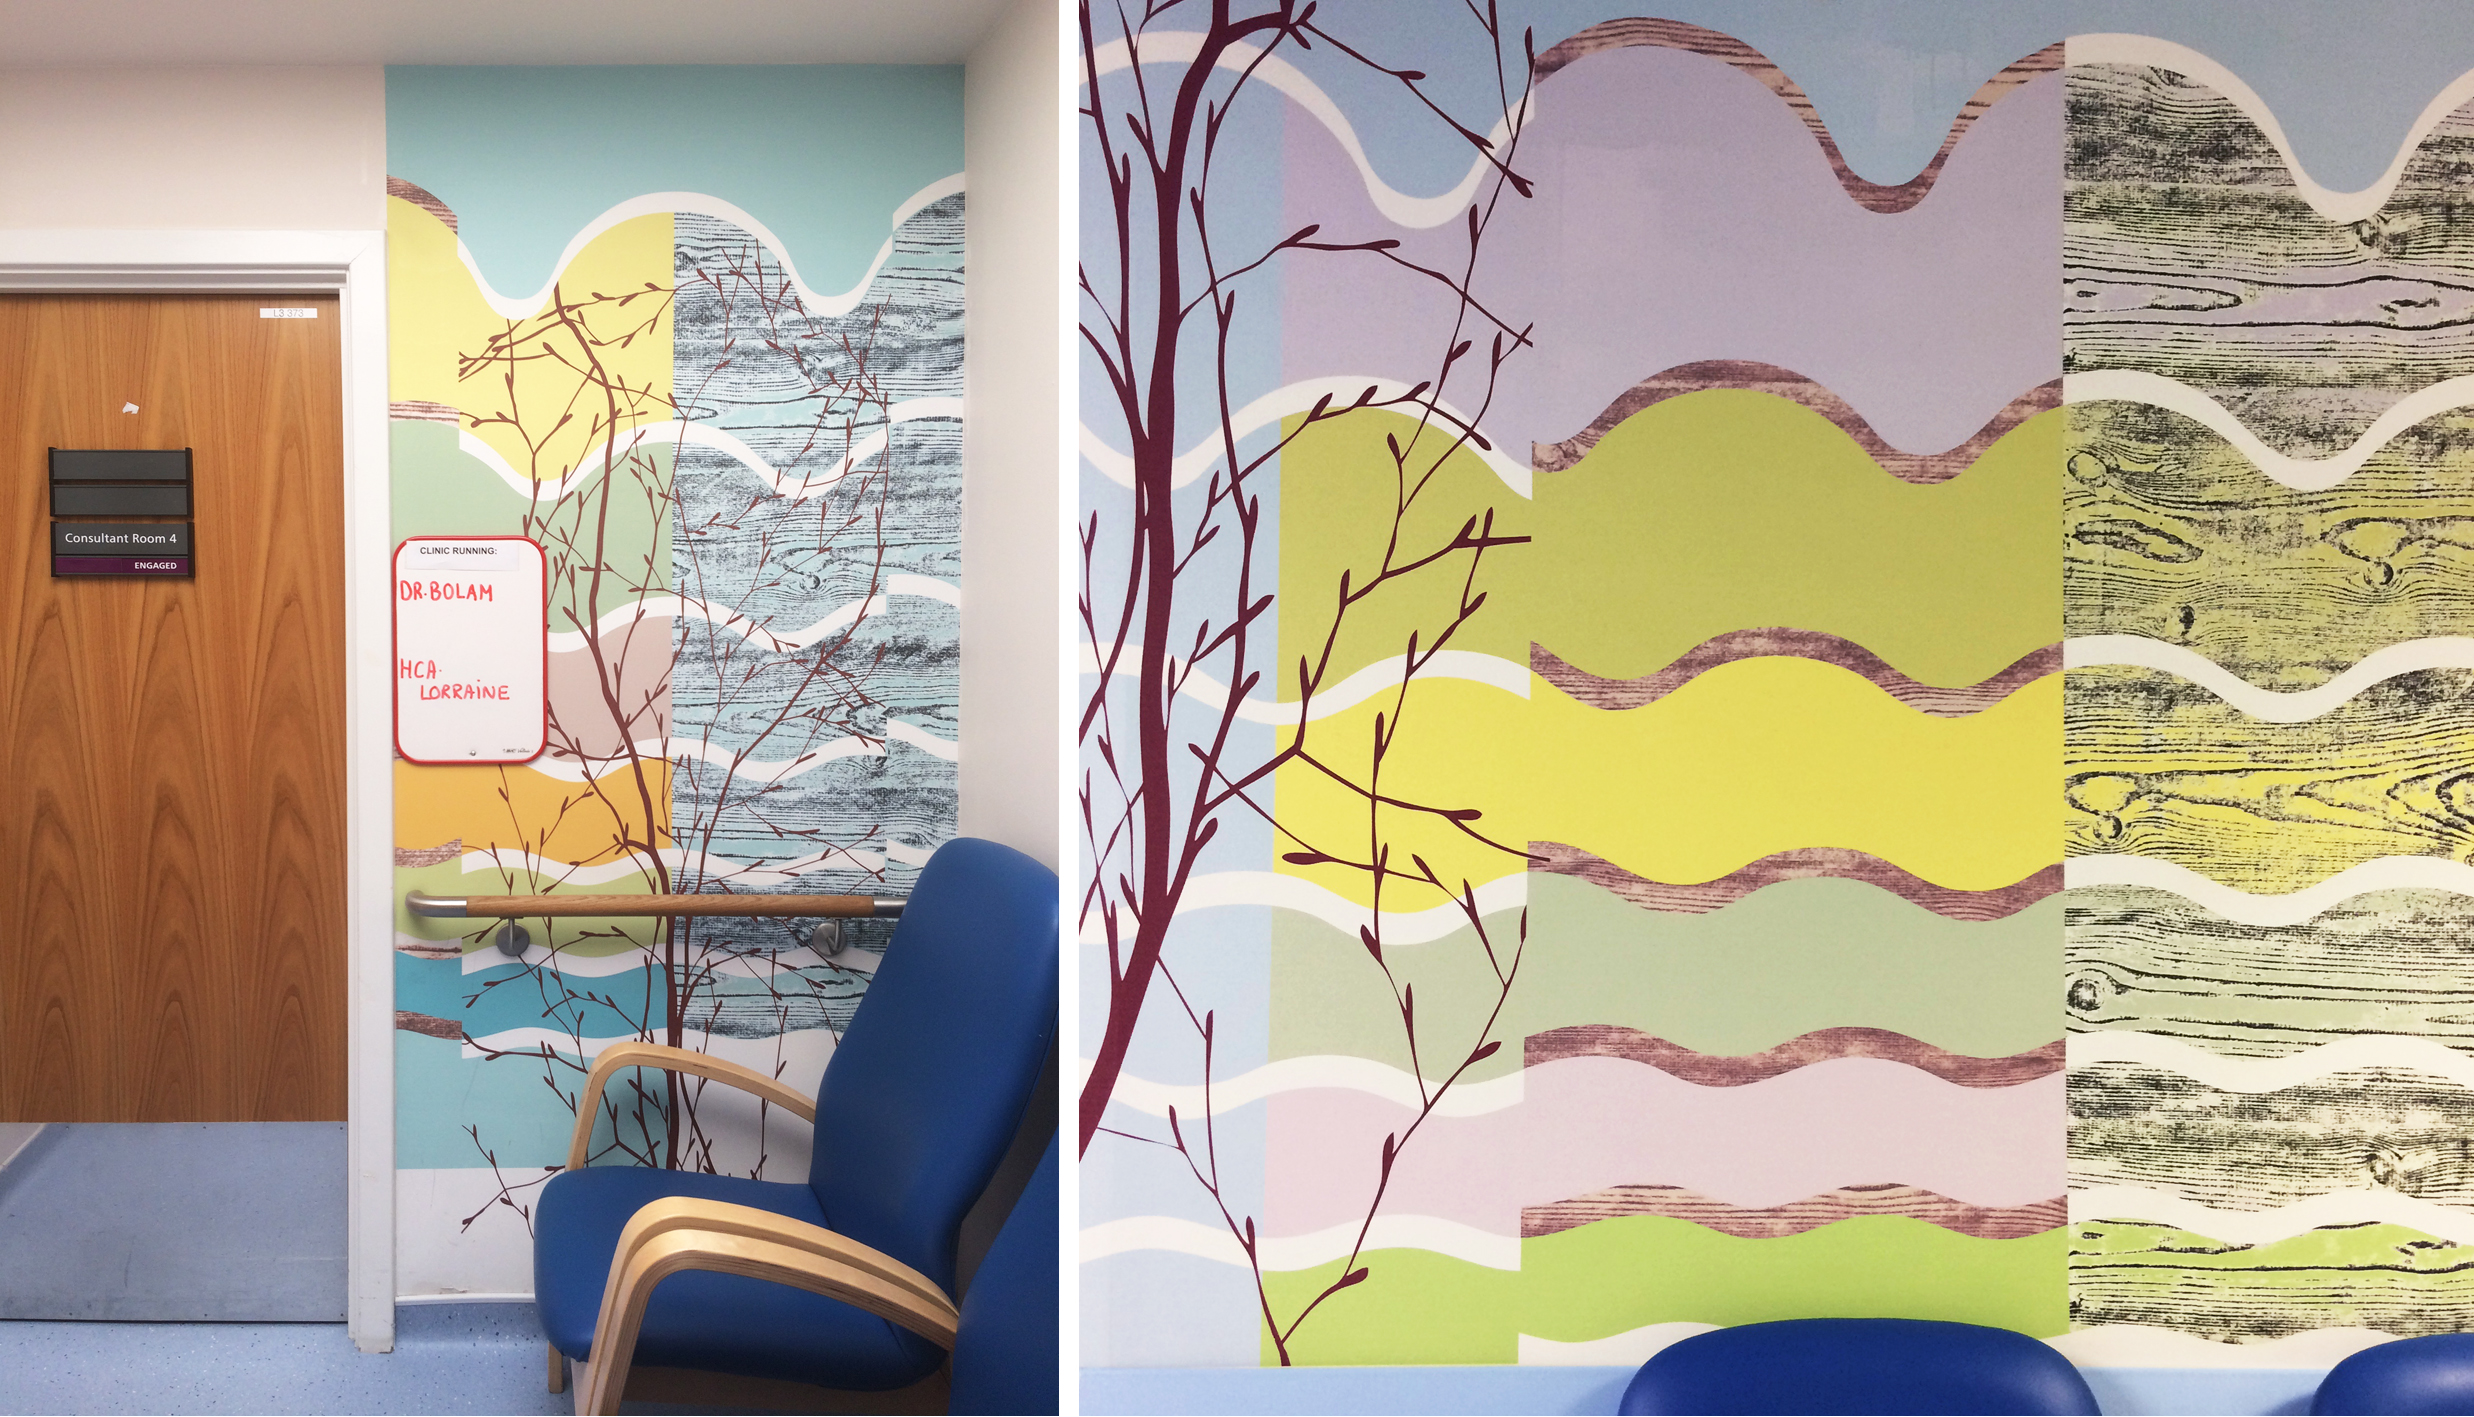 Digitally printed vinyl wallpaper outside consultation room and in waiting corridor.